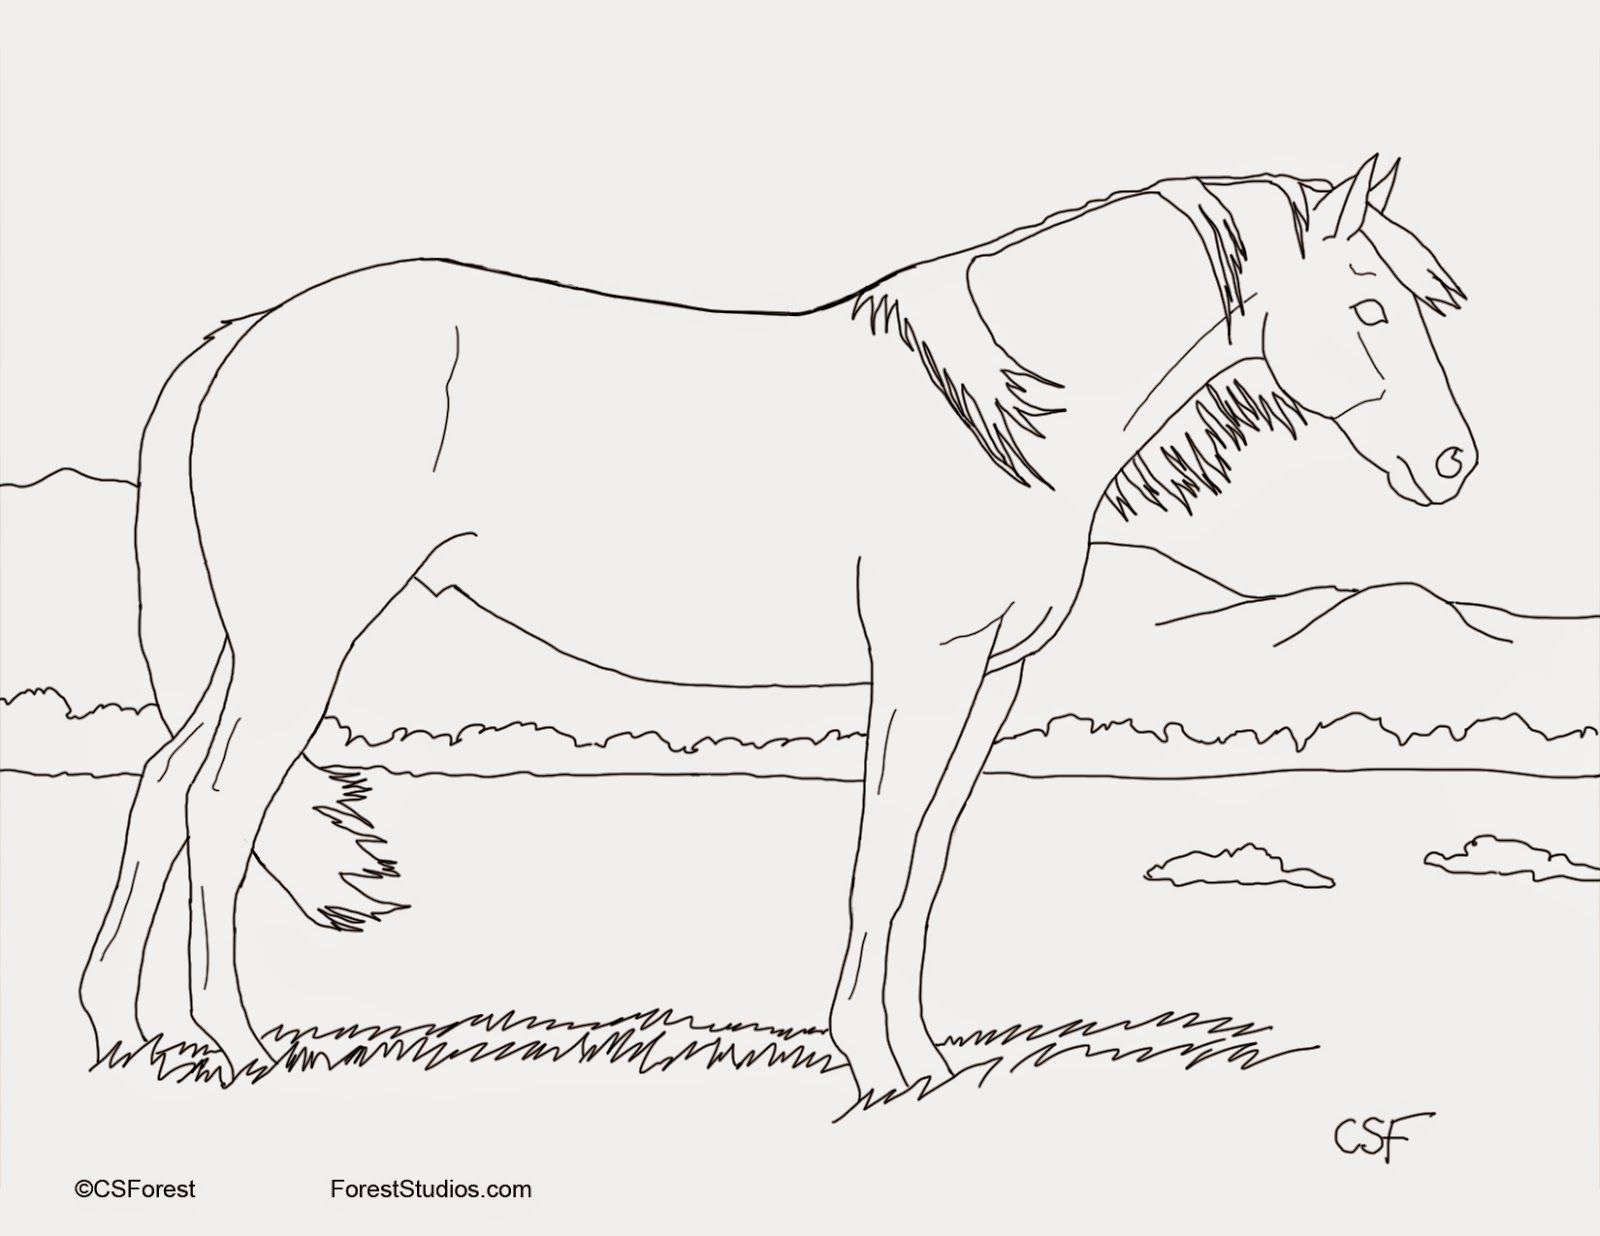 Forest Wildlife Art Coloring Book Page Buckskin Mustang Coloring Books Coloring Book Pages Wildlife Art